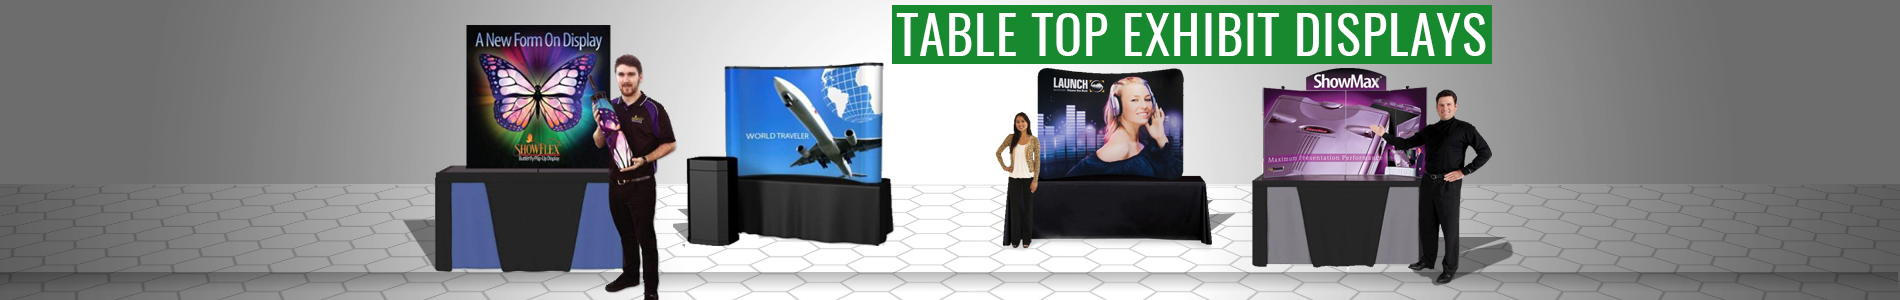 Table Top Exhibit Displays